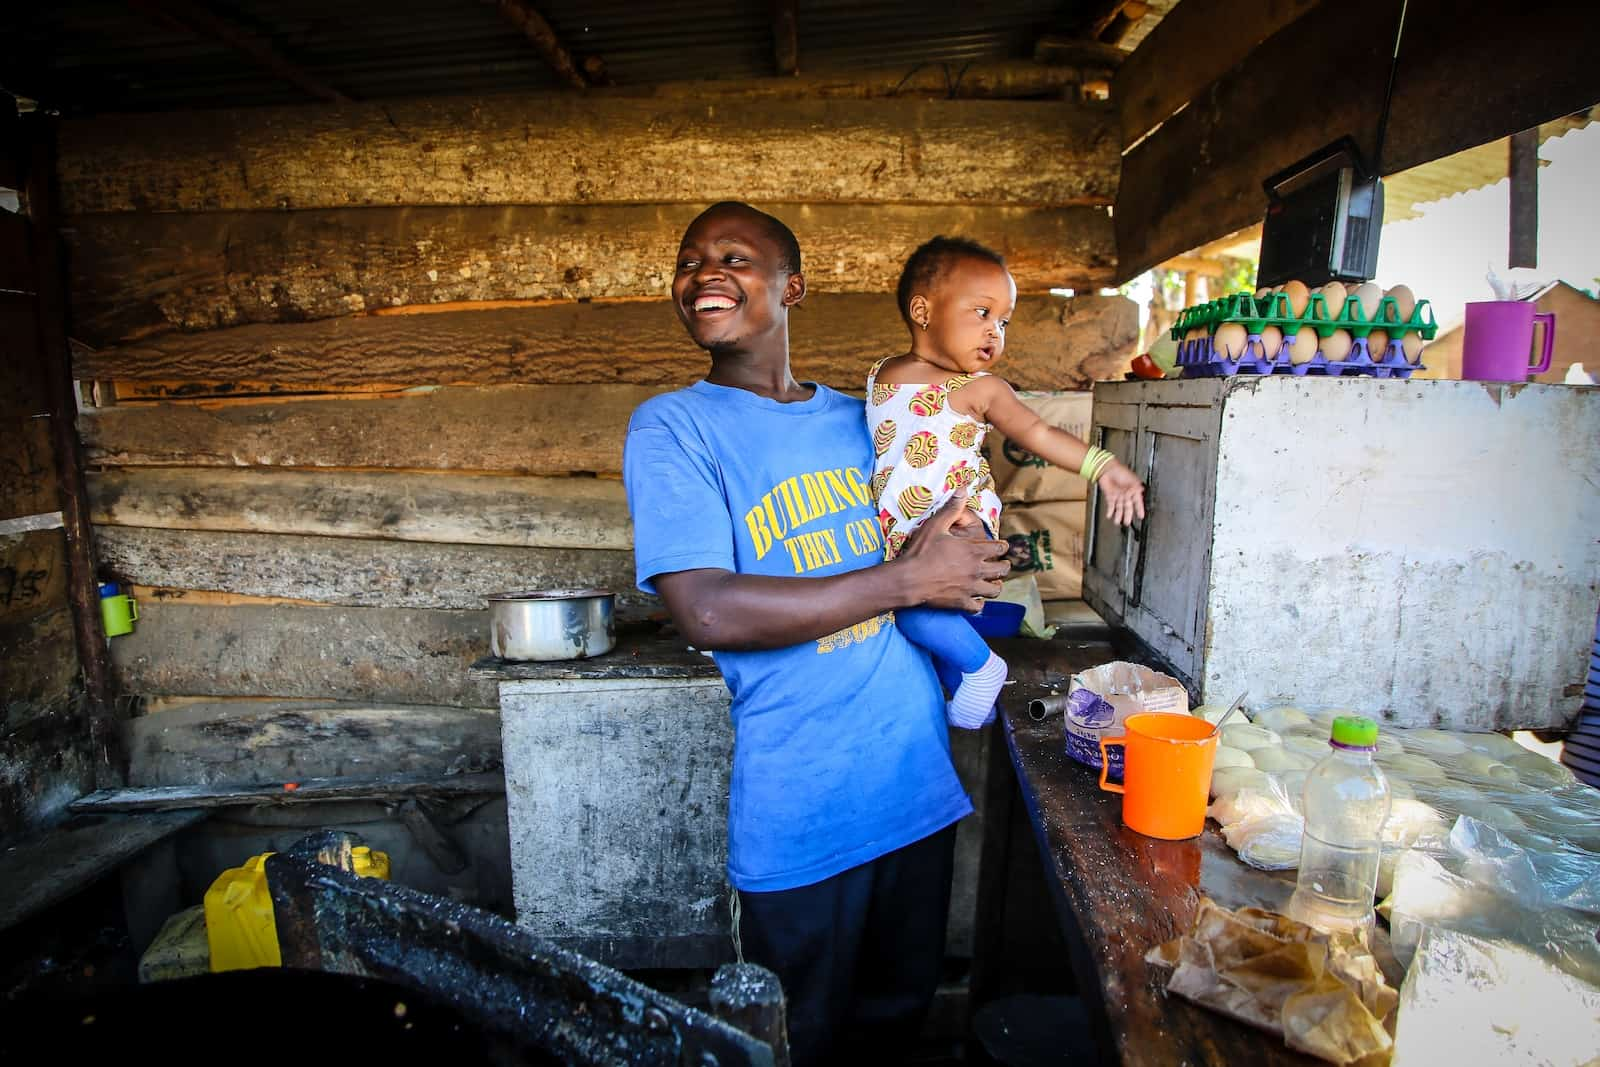 A man wearing a blue T-shirt holds a baby girl in his arms, standing in an open-air kitchen with breads and eggs on a table.